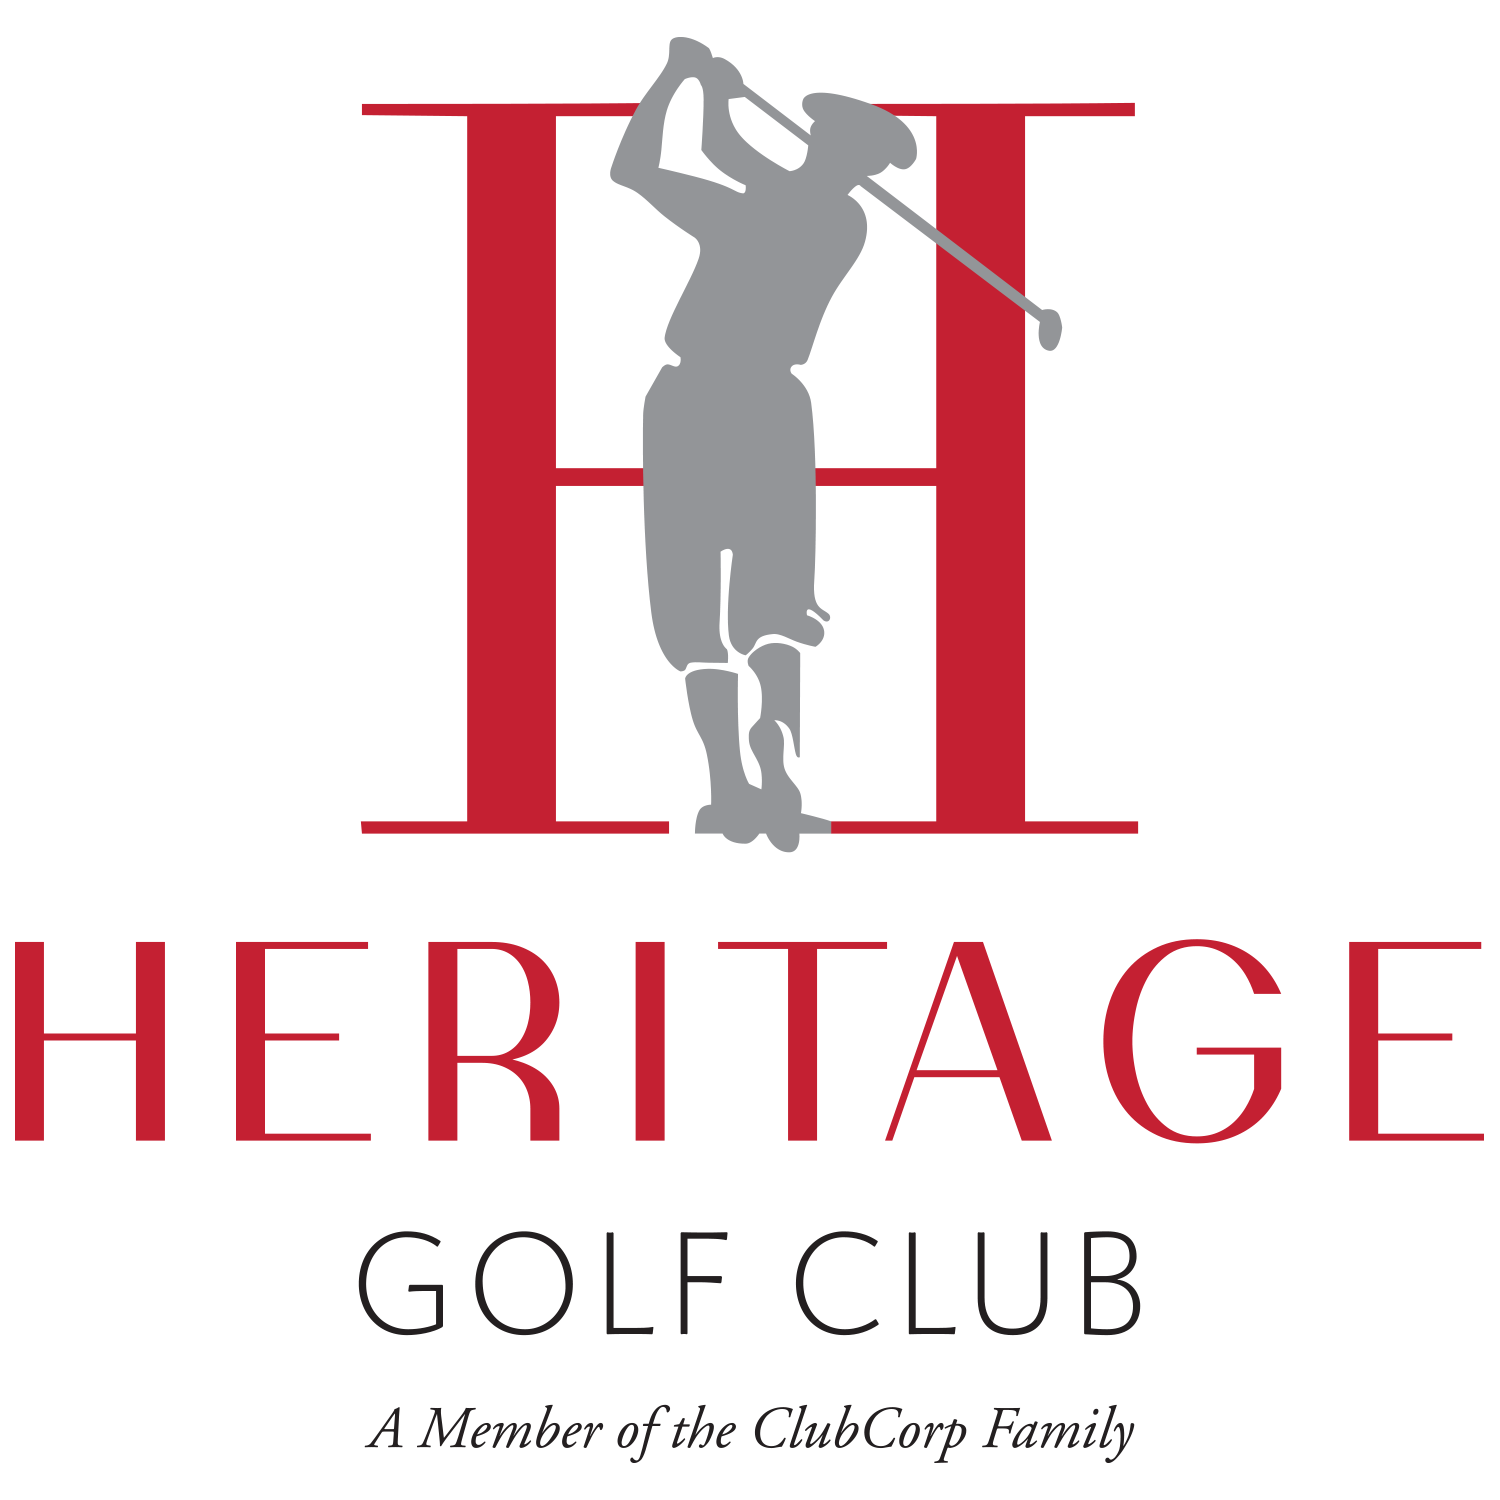 Heritage Golf Club - Hilliard, OH - Golf